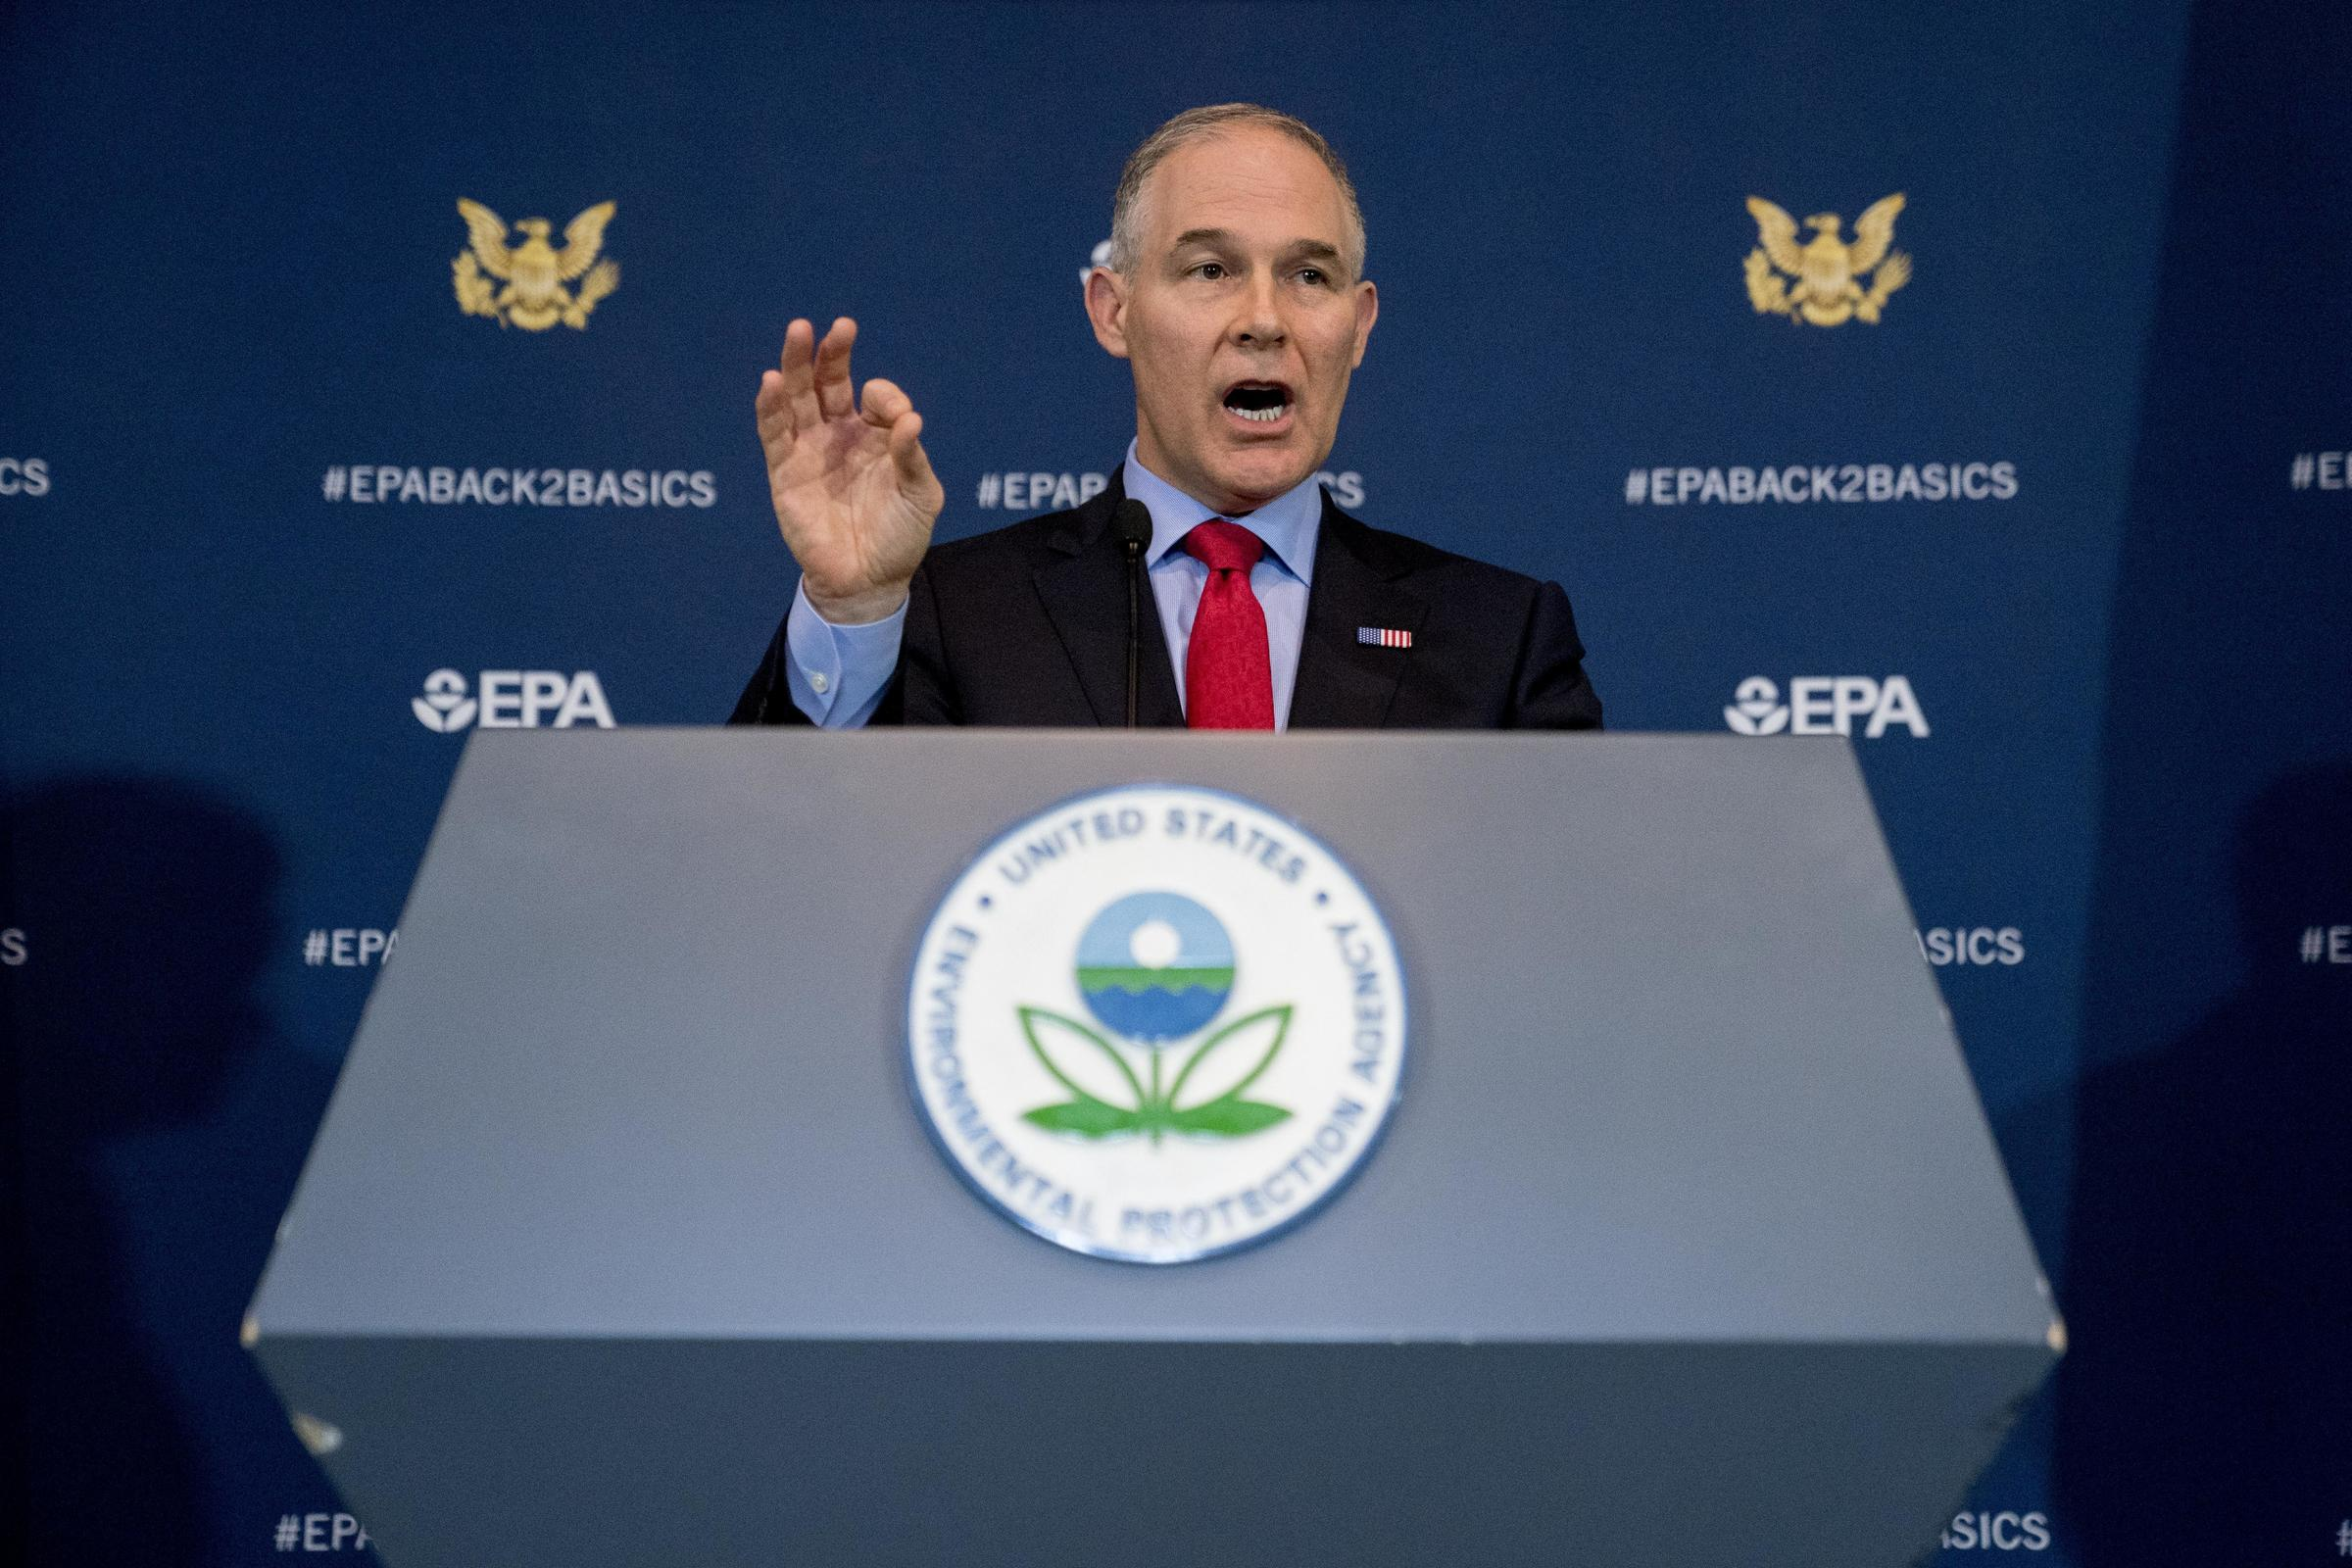 Scott Pruitt's $50-per-night condo looks really bad